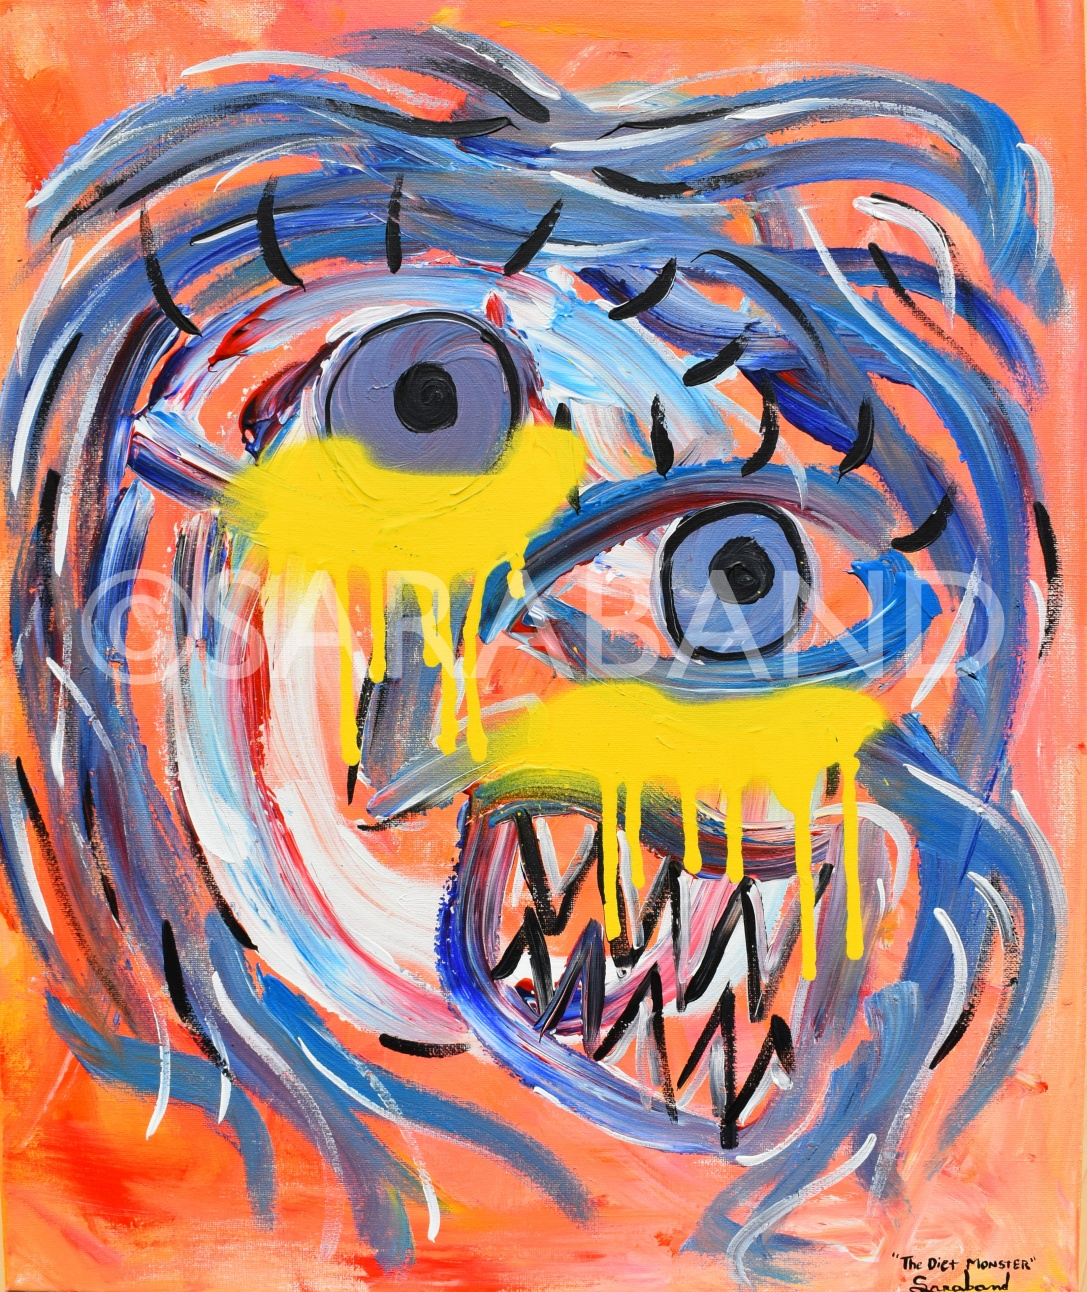 """THE DIET MONSTER"" - 60x50cm, acrylic on canvas - £500"